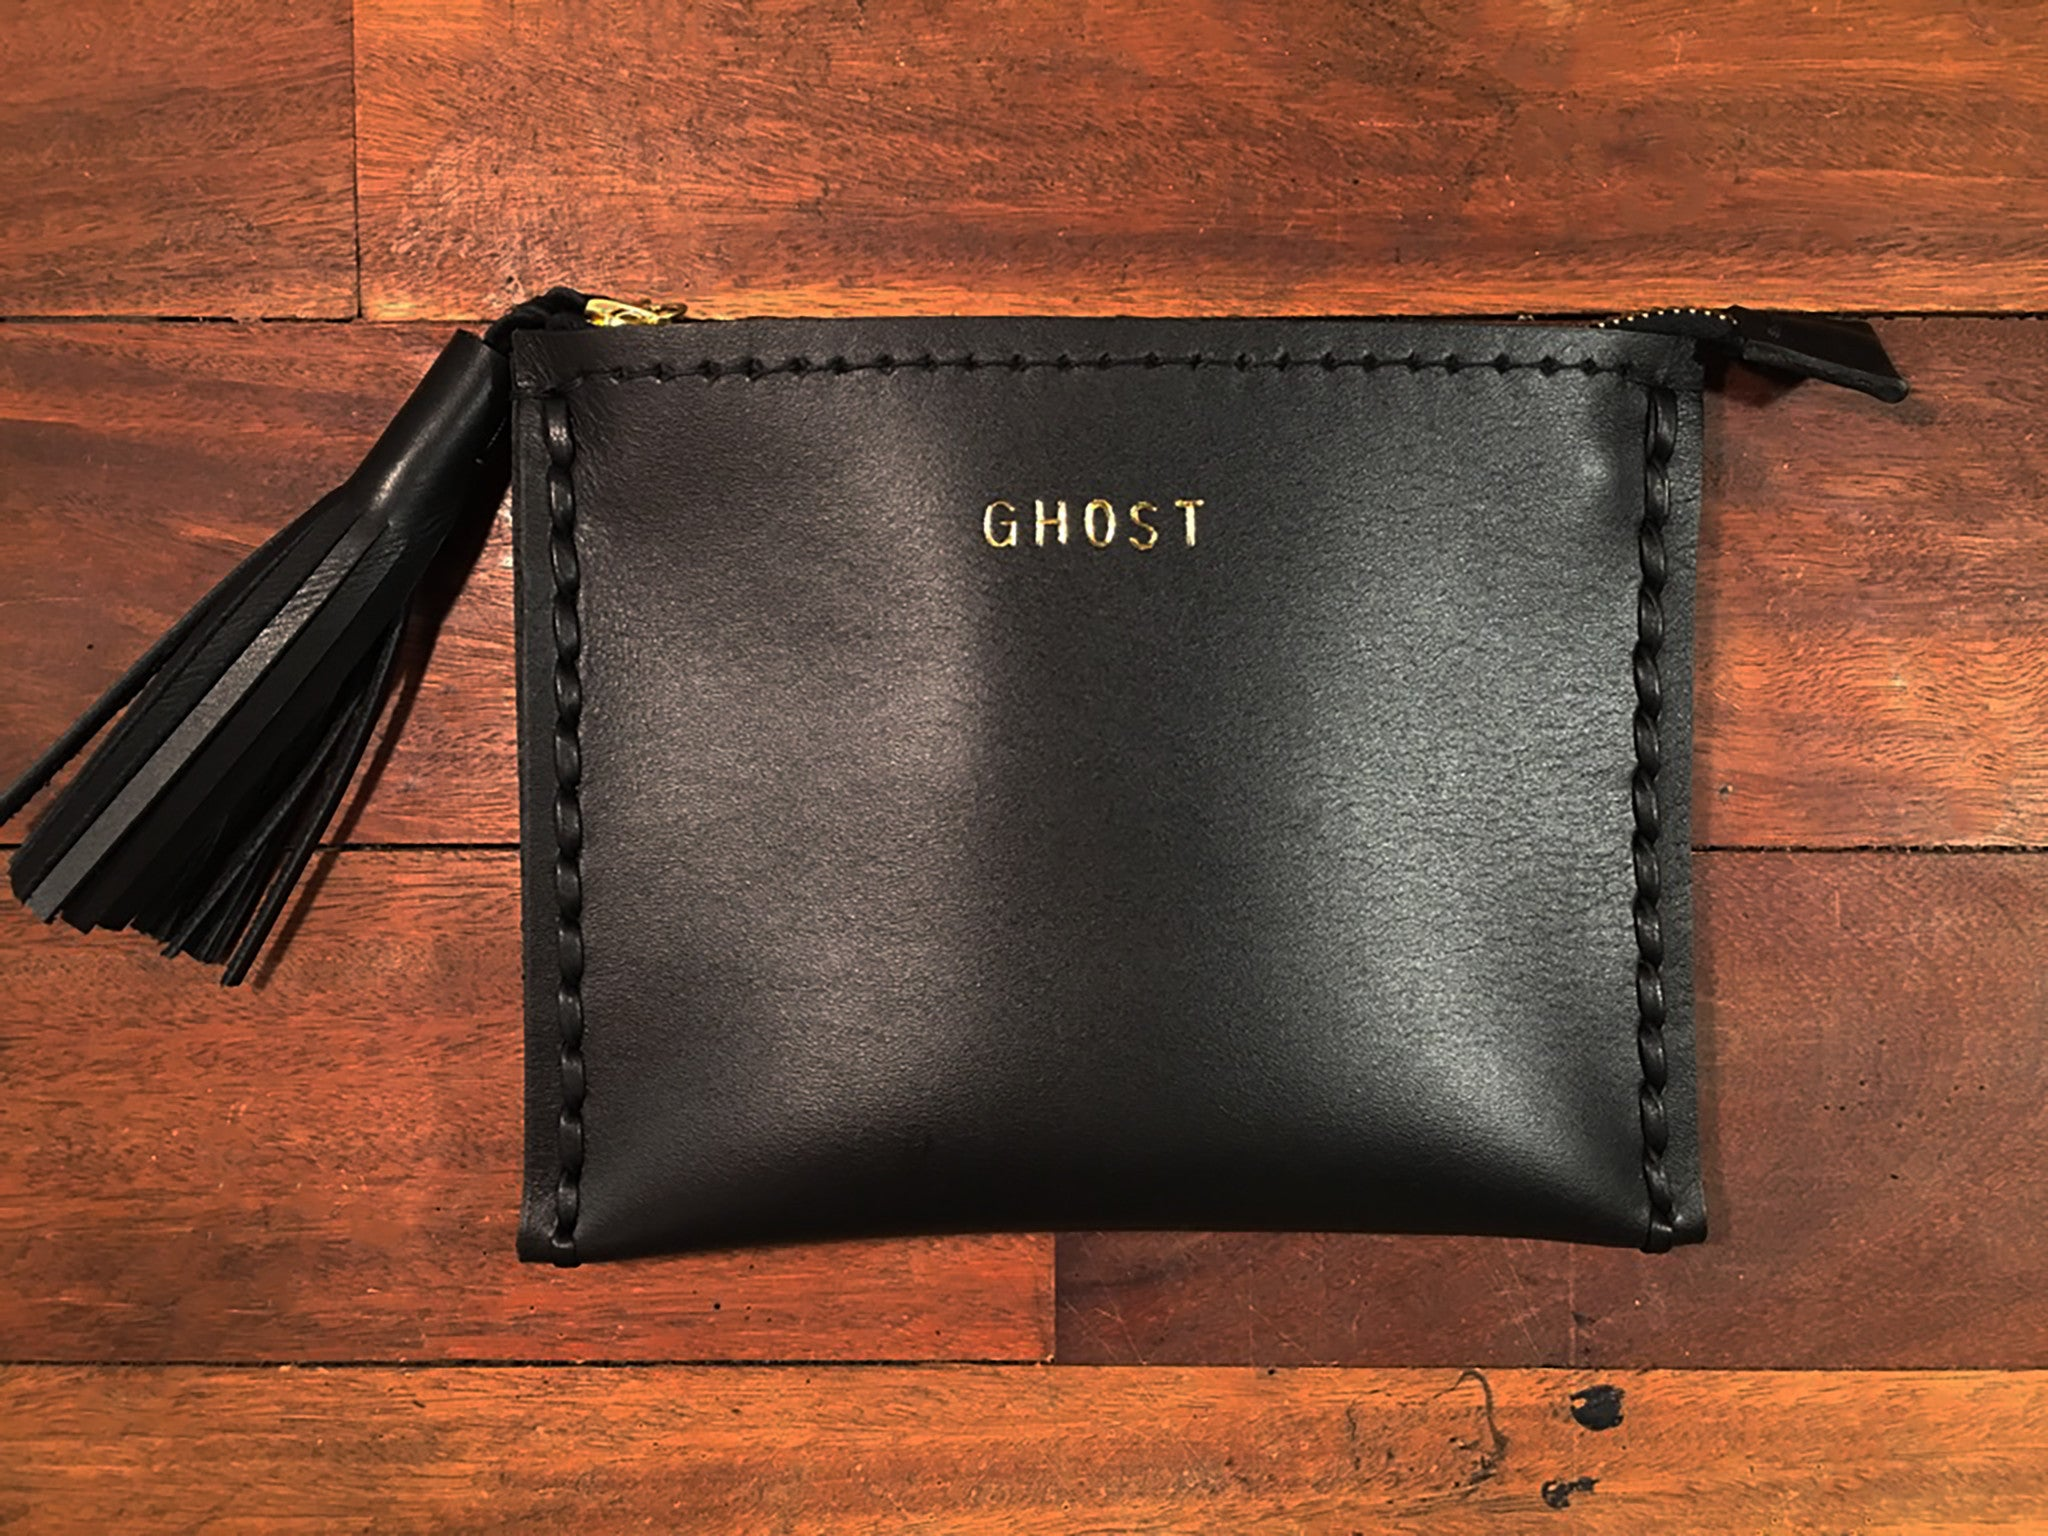 GHOST Black Leather Small Laced Clutch Pouch Custom Embossed Initial Monogram Card Wallet Wendy Nichol Luxe Luxury Purse Handbag Designer handbags Handmade in NYC New York City High Quality Smooth Black Leather Silver Gold Foil Zip Zipper Pouch